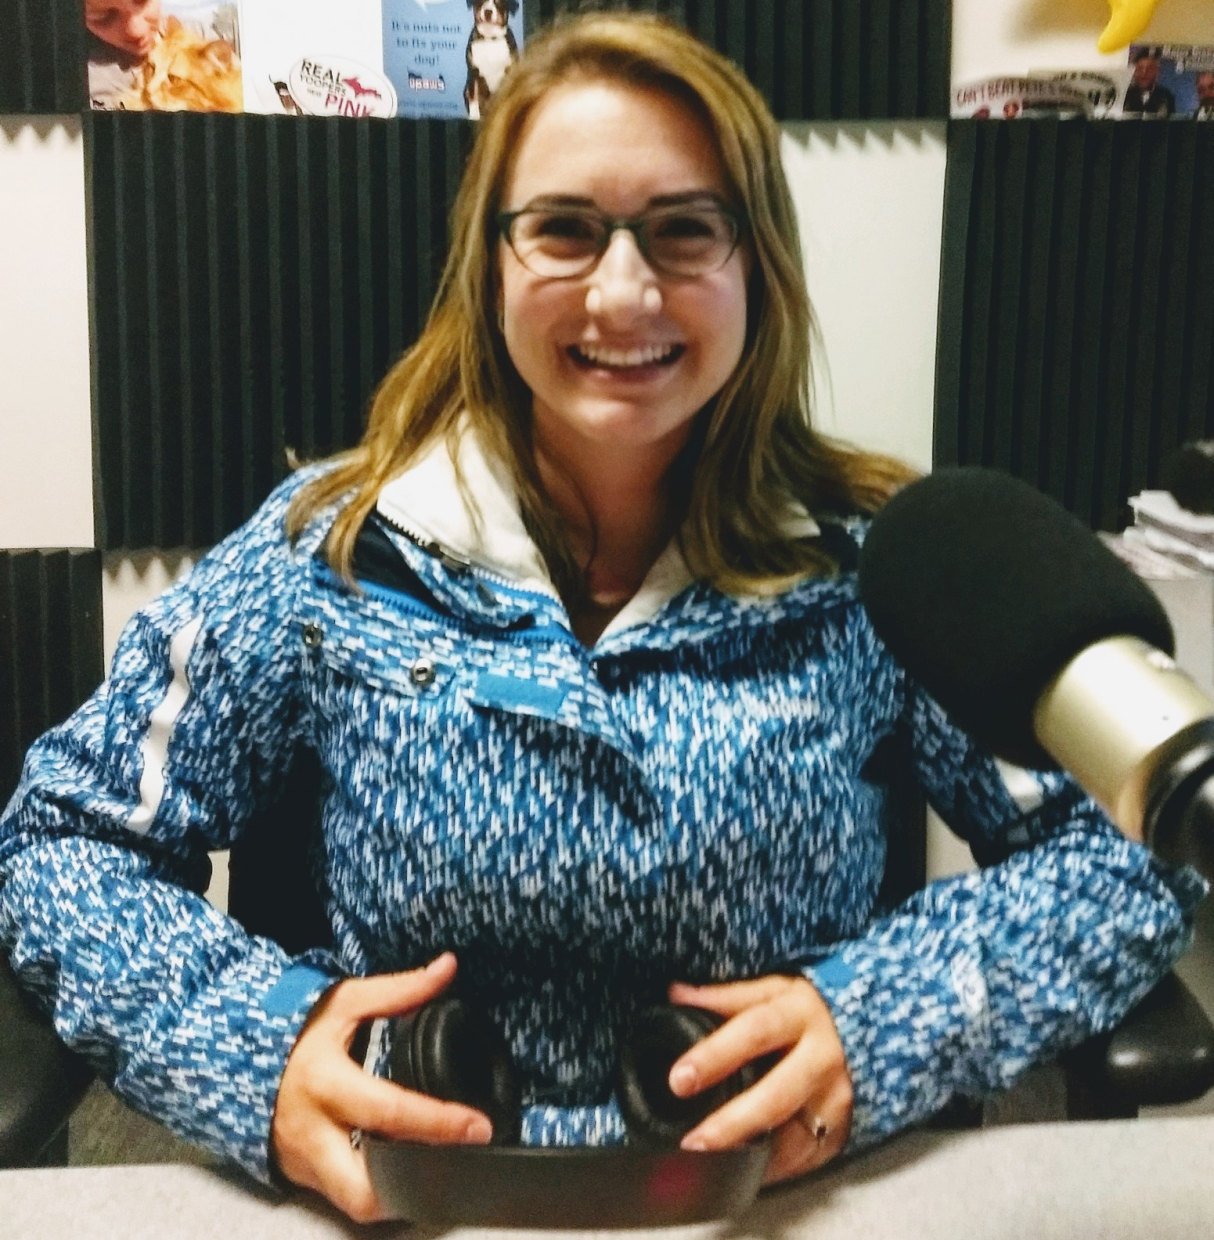 Kelsey in her Glasses, The Sunny Morning Show